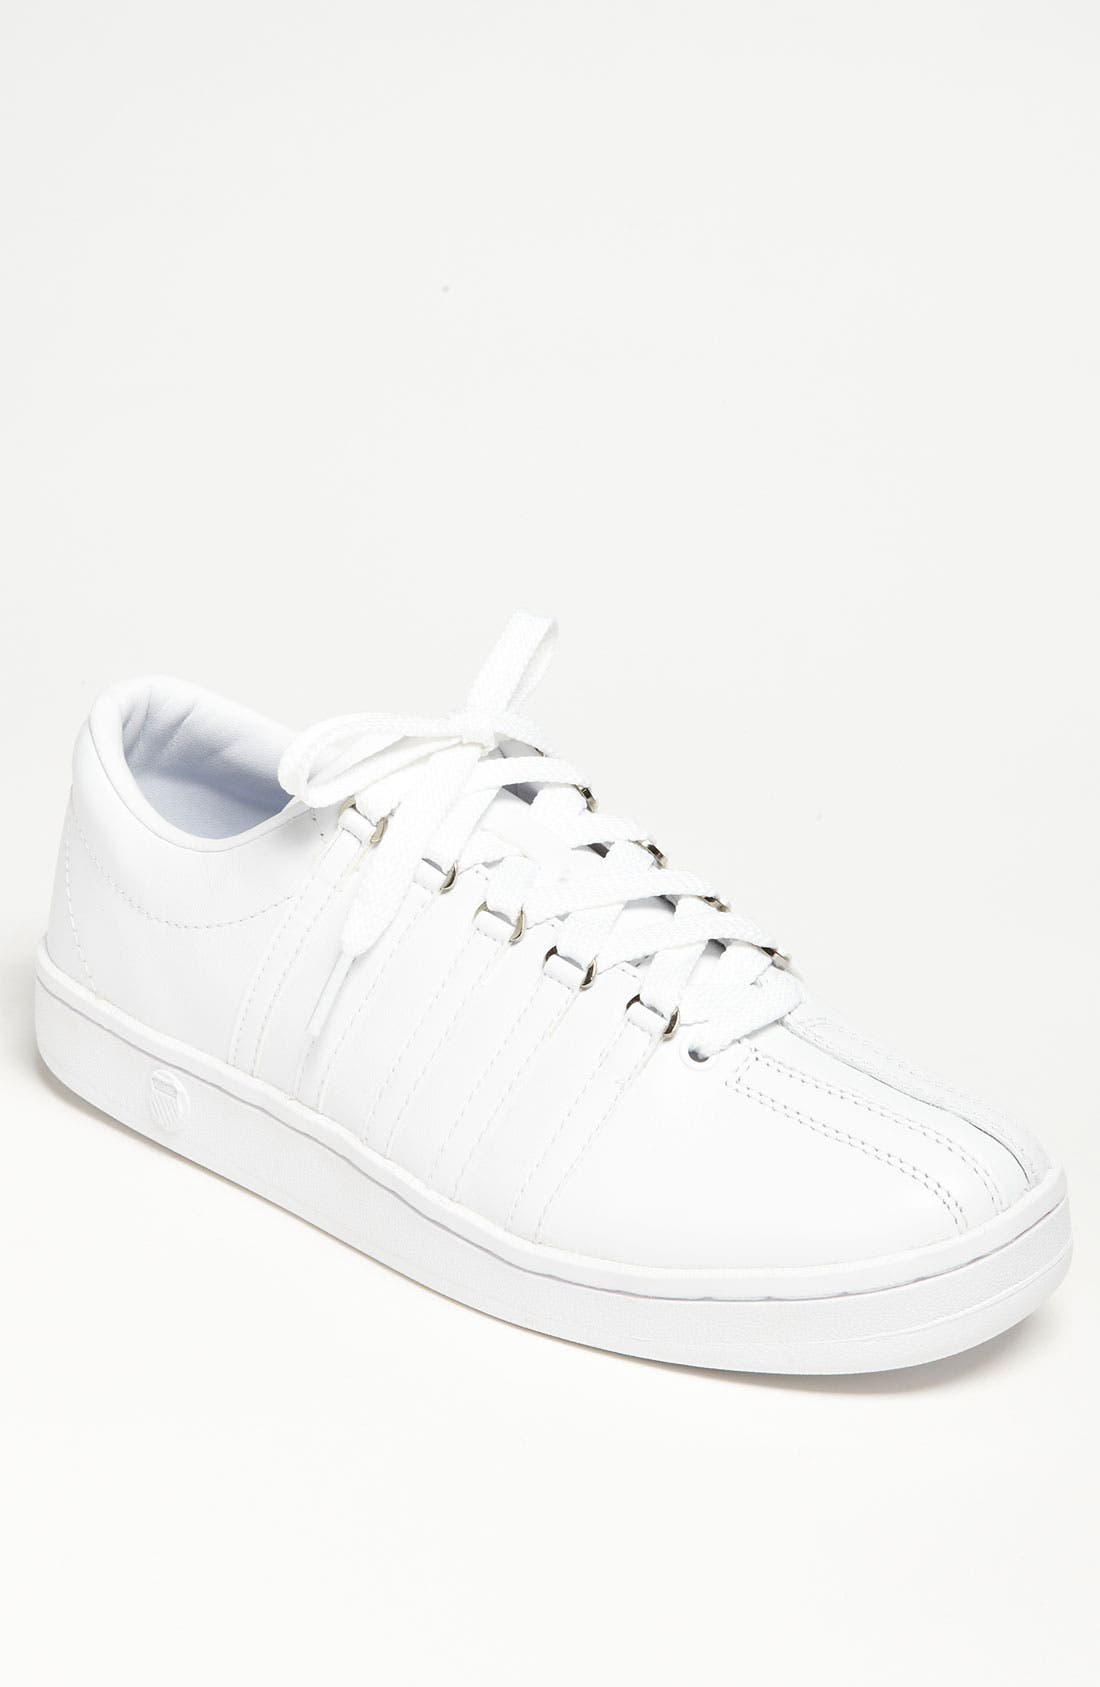 k-swiss shoes classic cleaning by moms inc christ